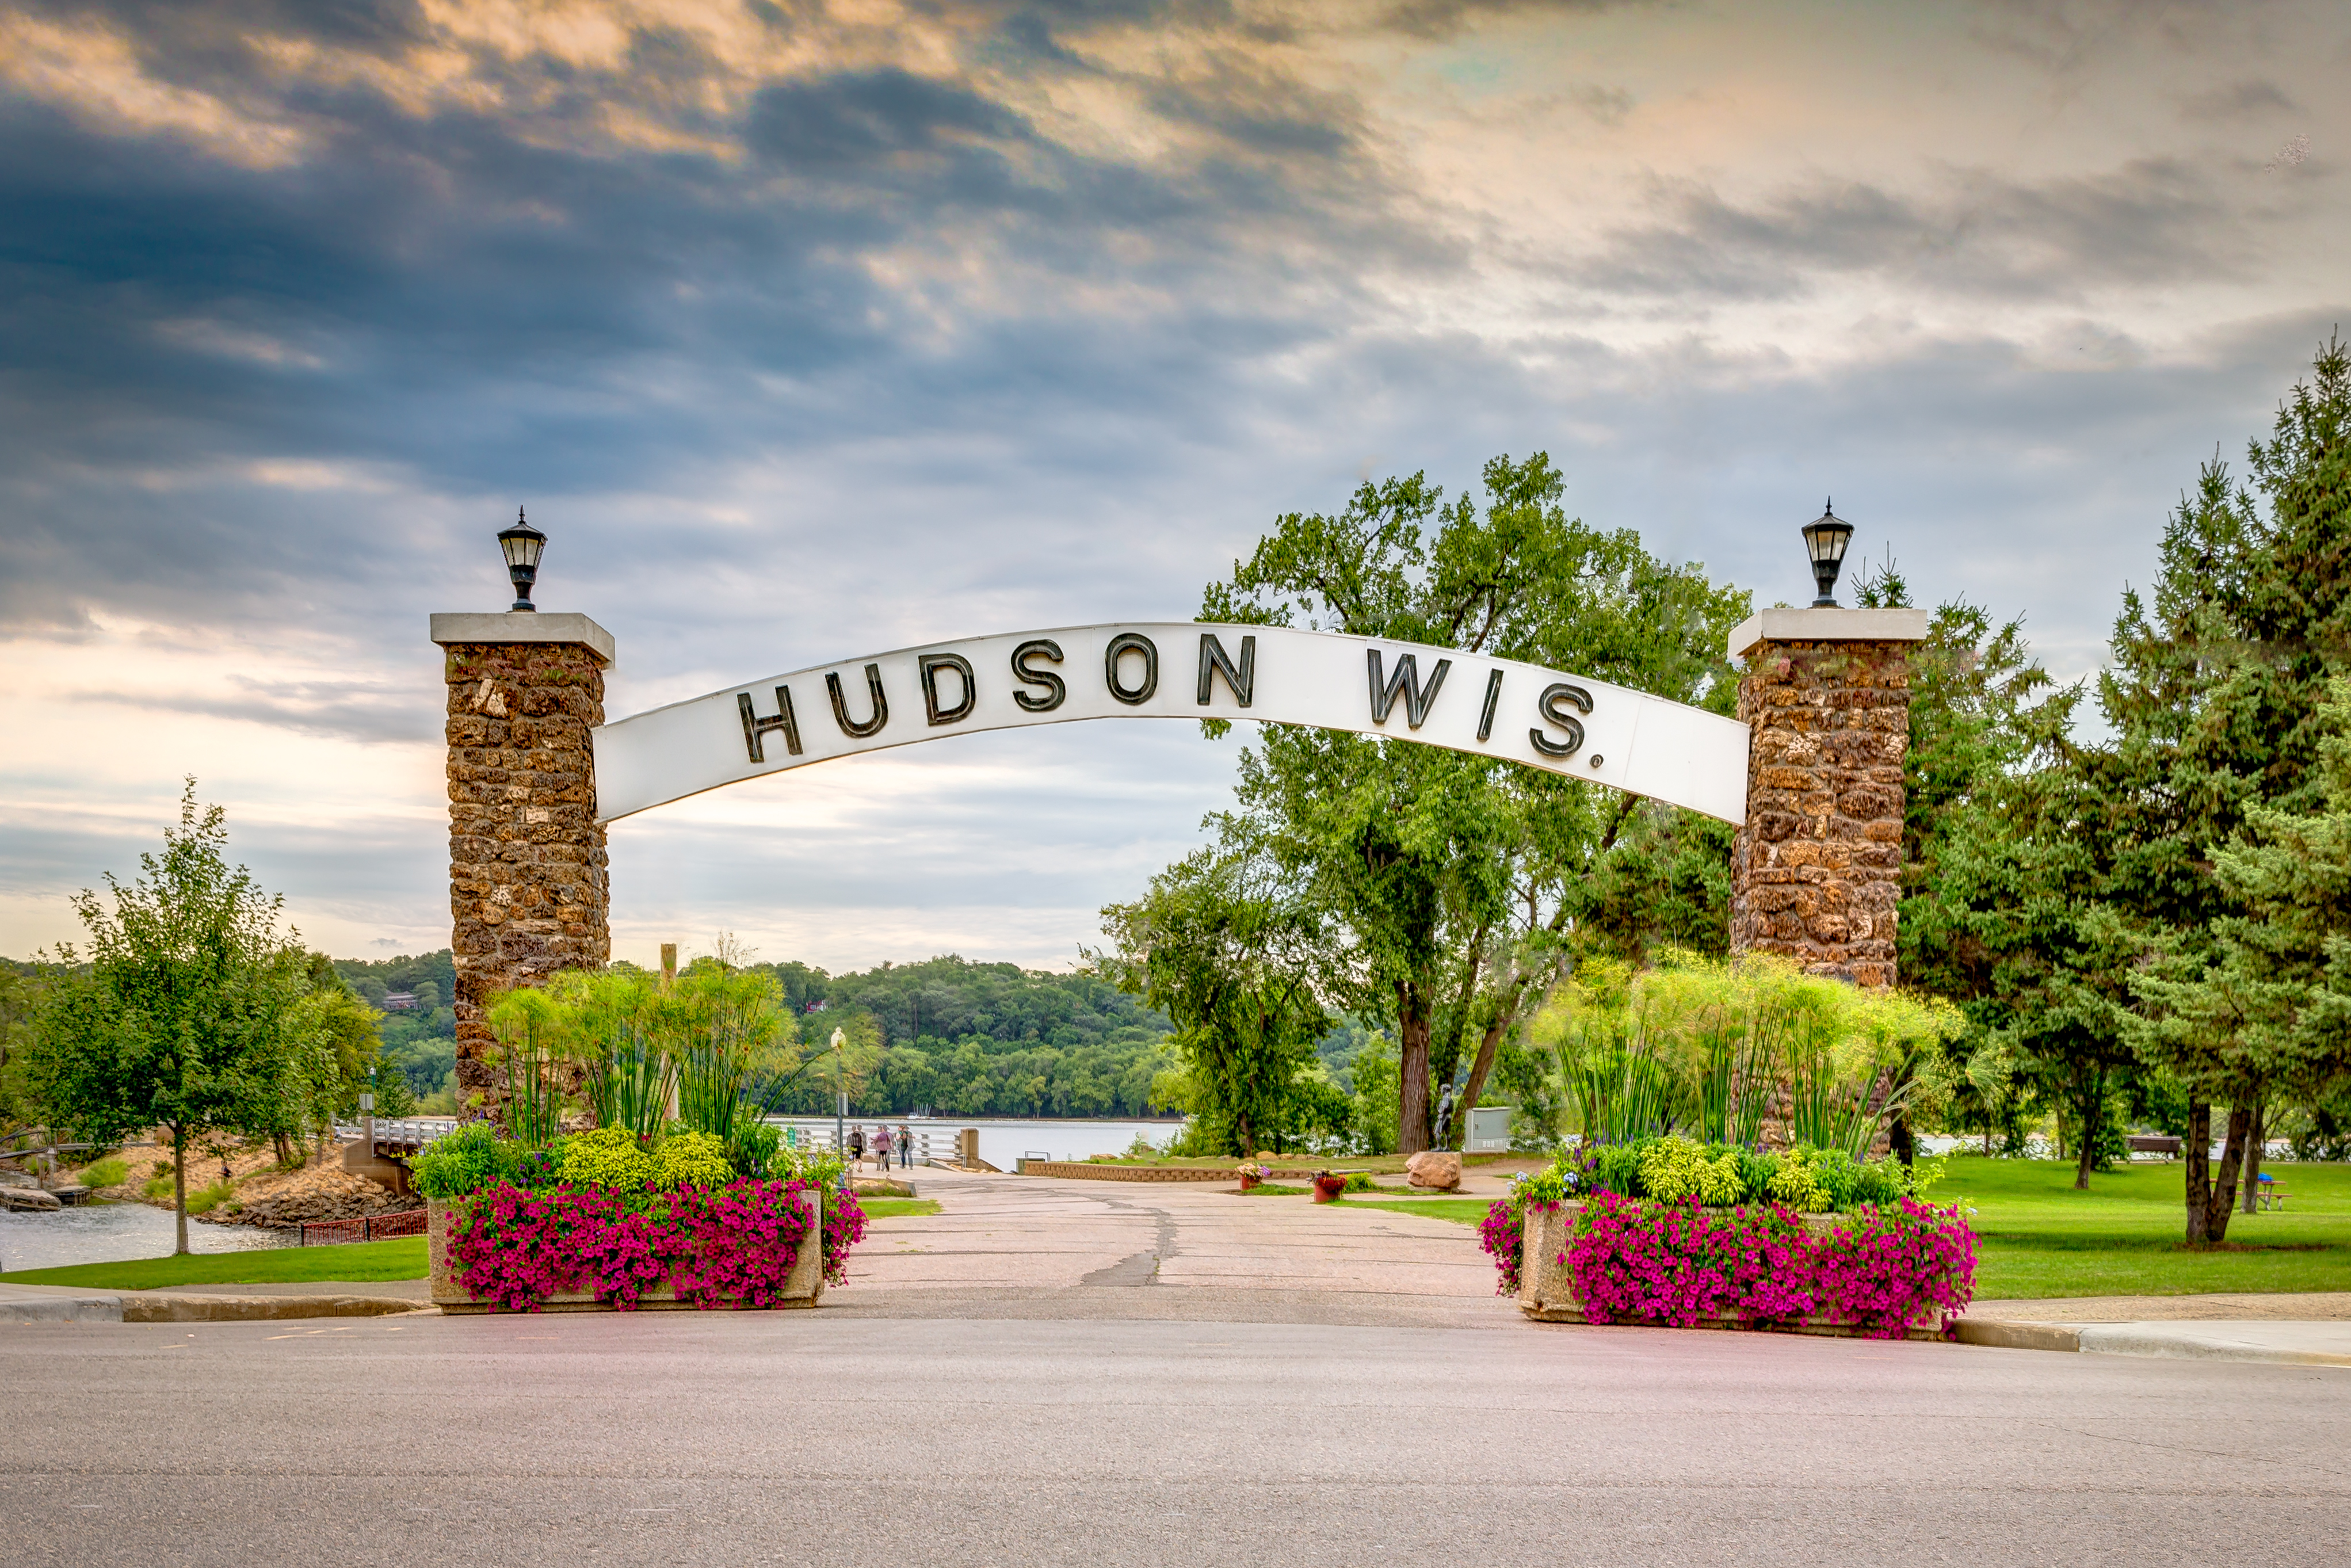 New Beginnings in Hudson - a message from the President